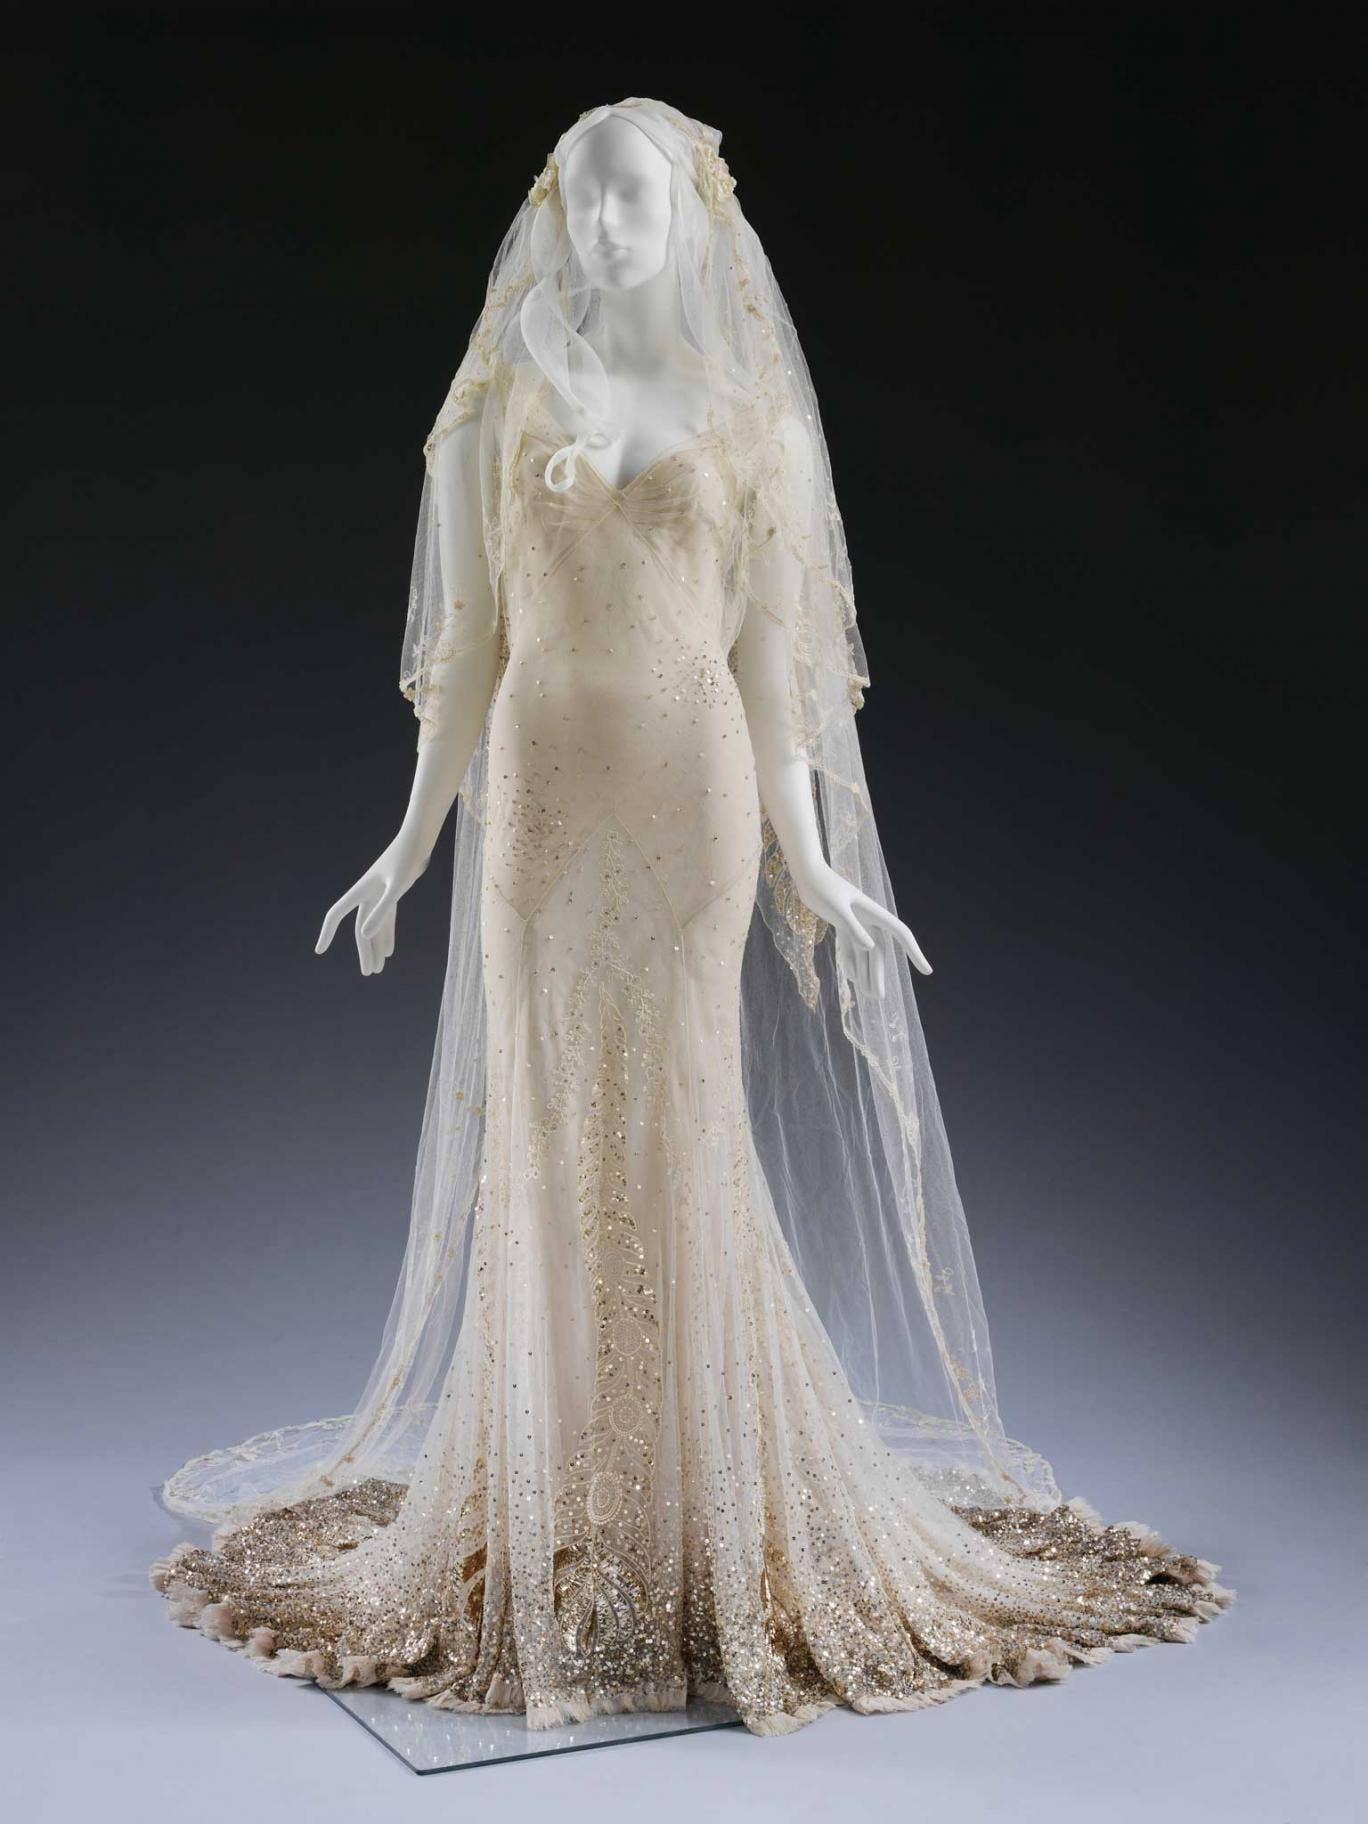 Kate's gown is embellished with golden paillette embroidery, a delicate couture touch reminiscent of John Galliano's work as head of Christian Dior